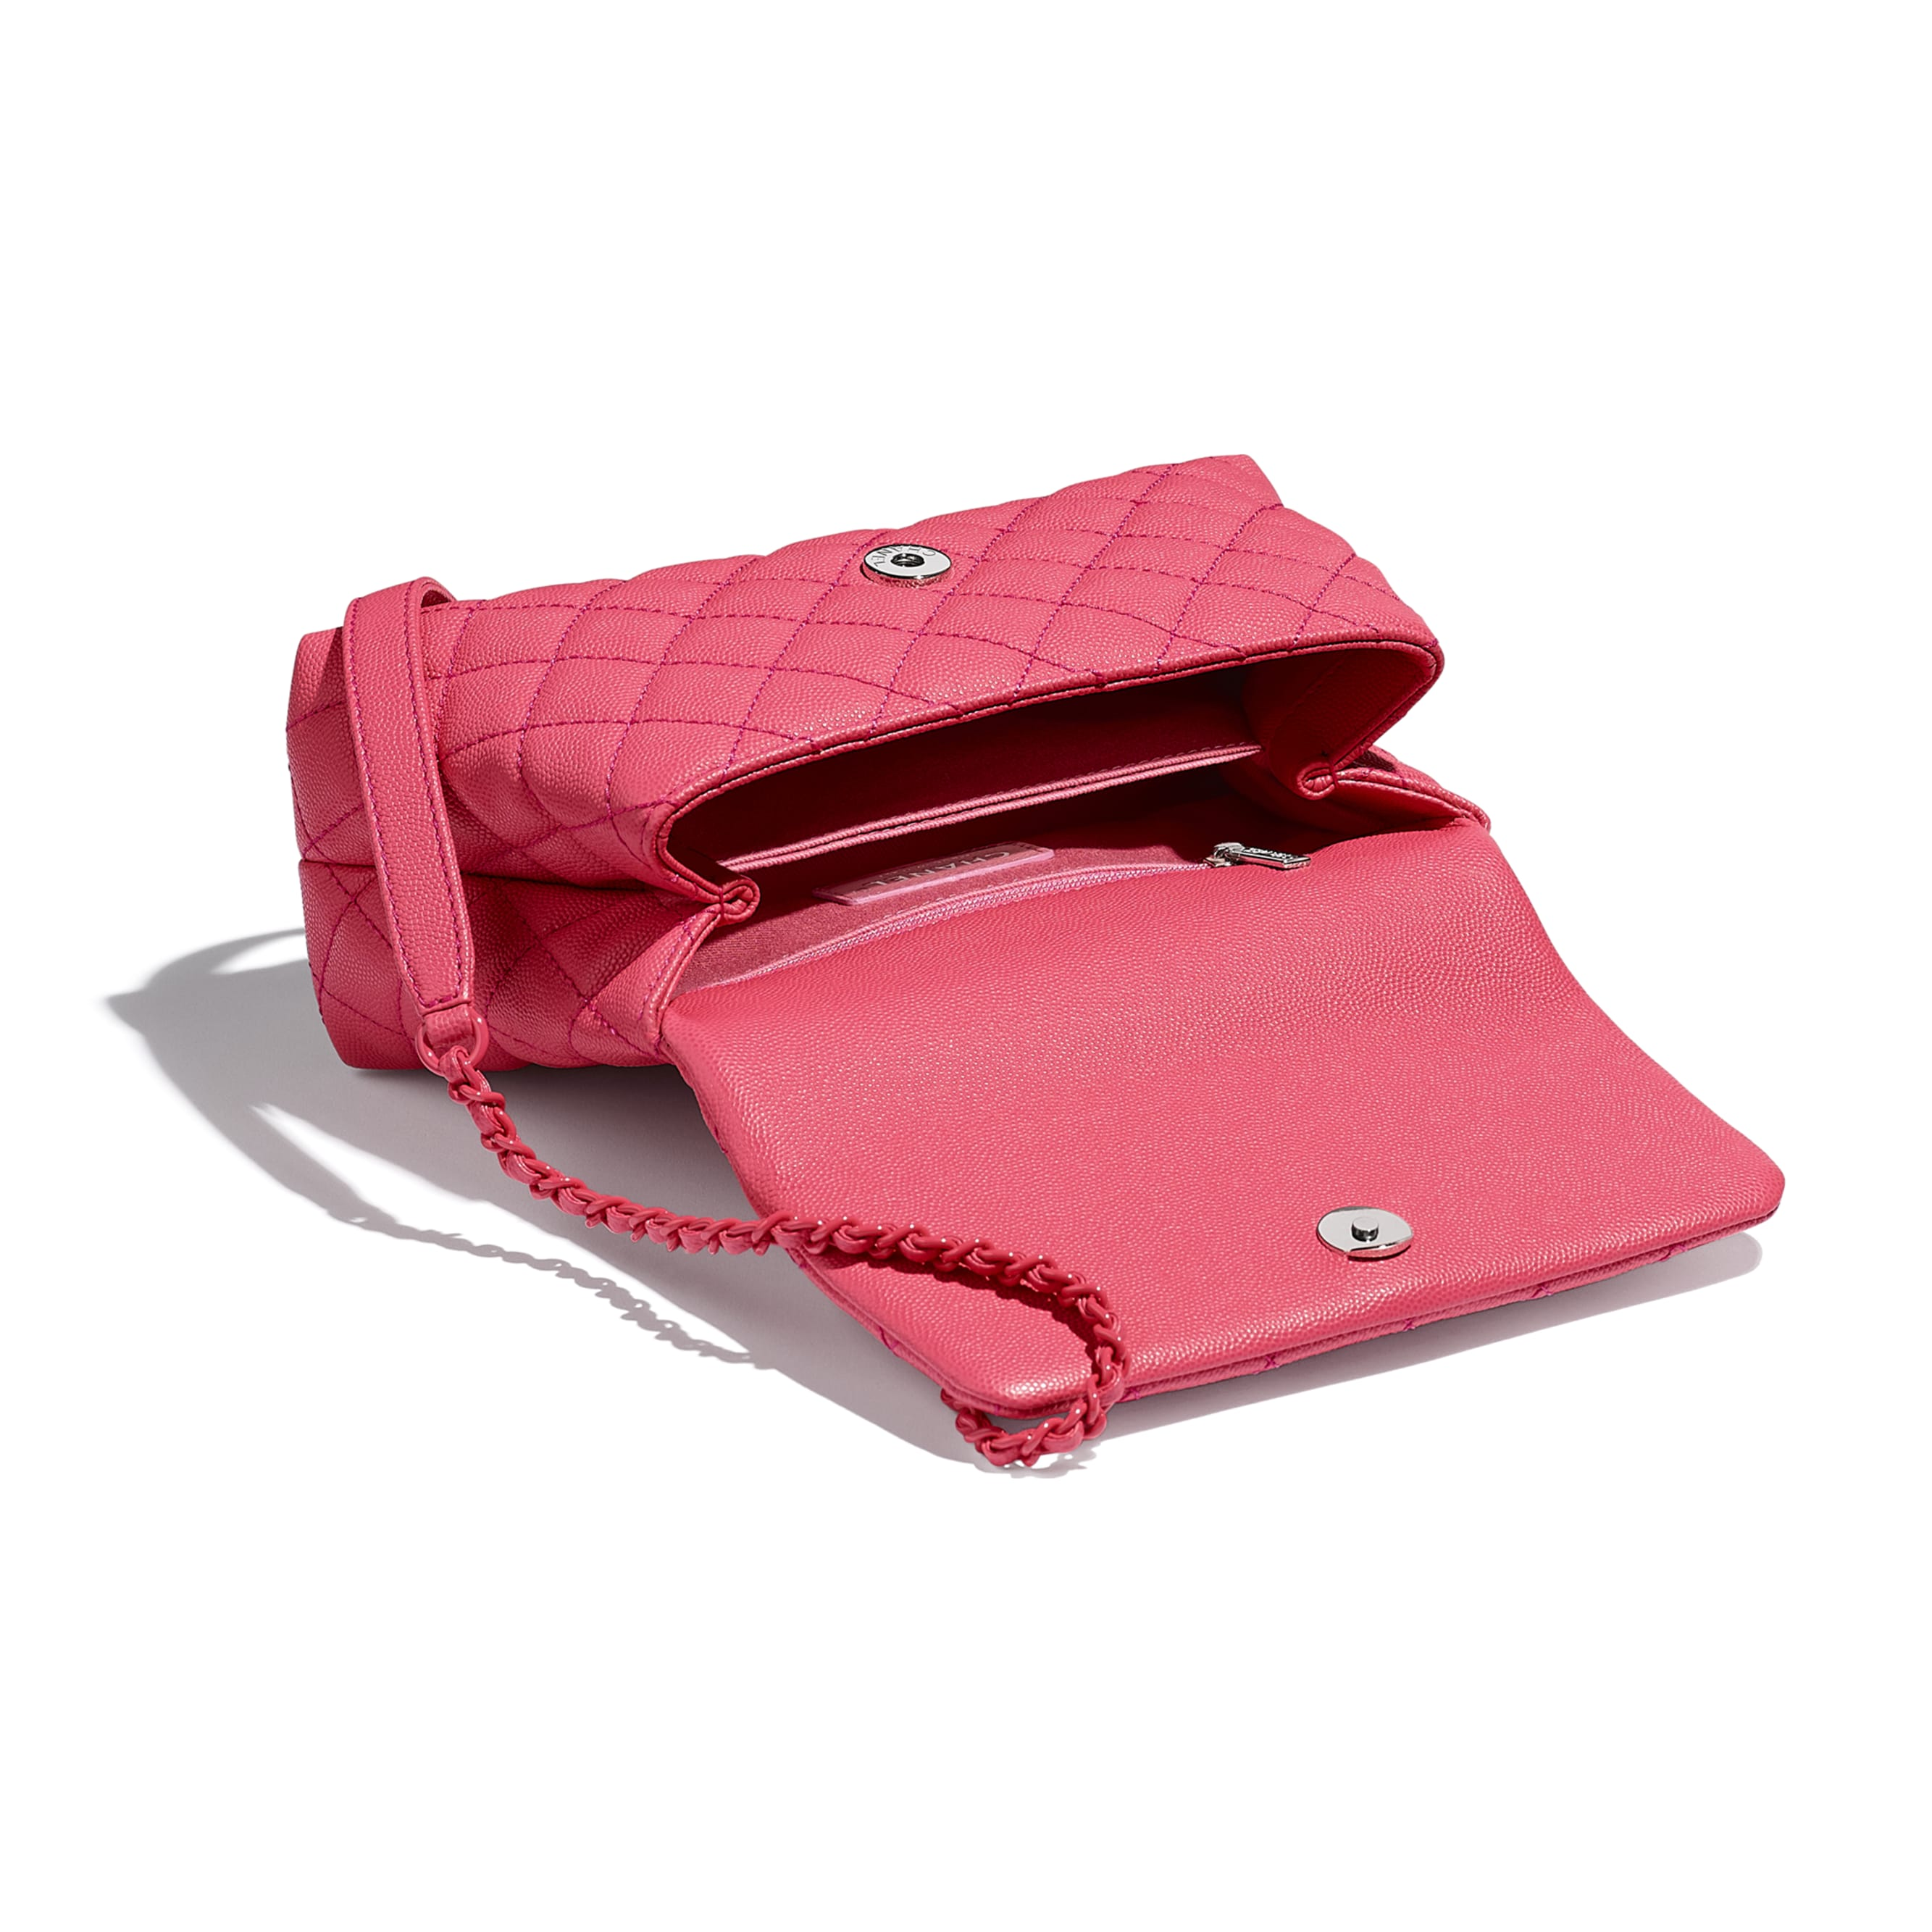 Flap Bag With Top Handle - Pink - Grained Calfskin & Lacquered Metal - CHANEL - Other view - see standard sized version